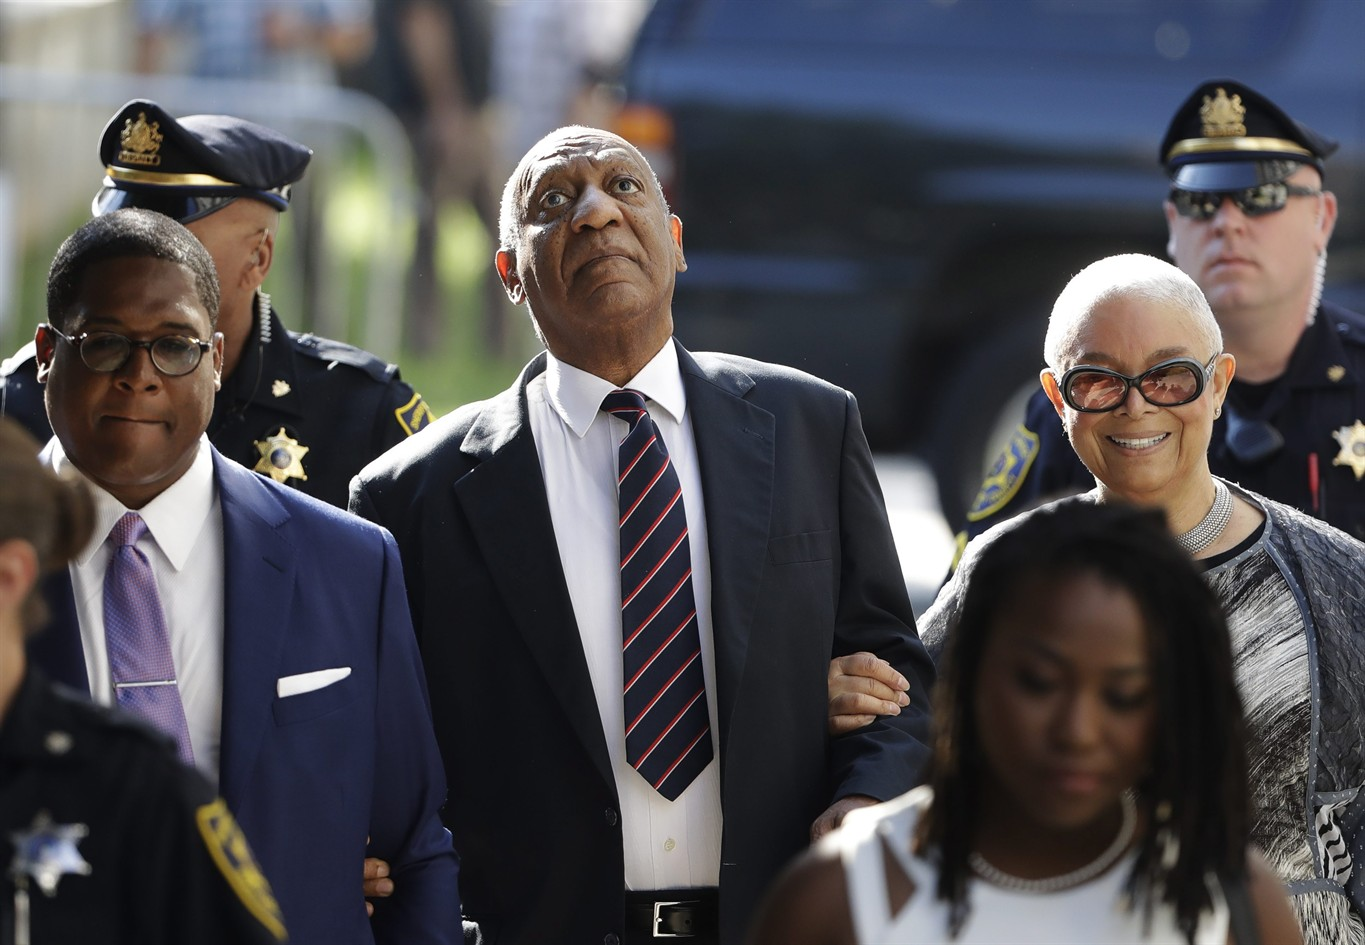 Bill Cosby Returns to Court for Last Pre-Trial Hearing; Cosby's Lawyers ask Judge to Toss Charges